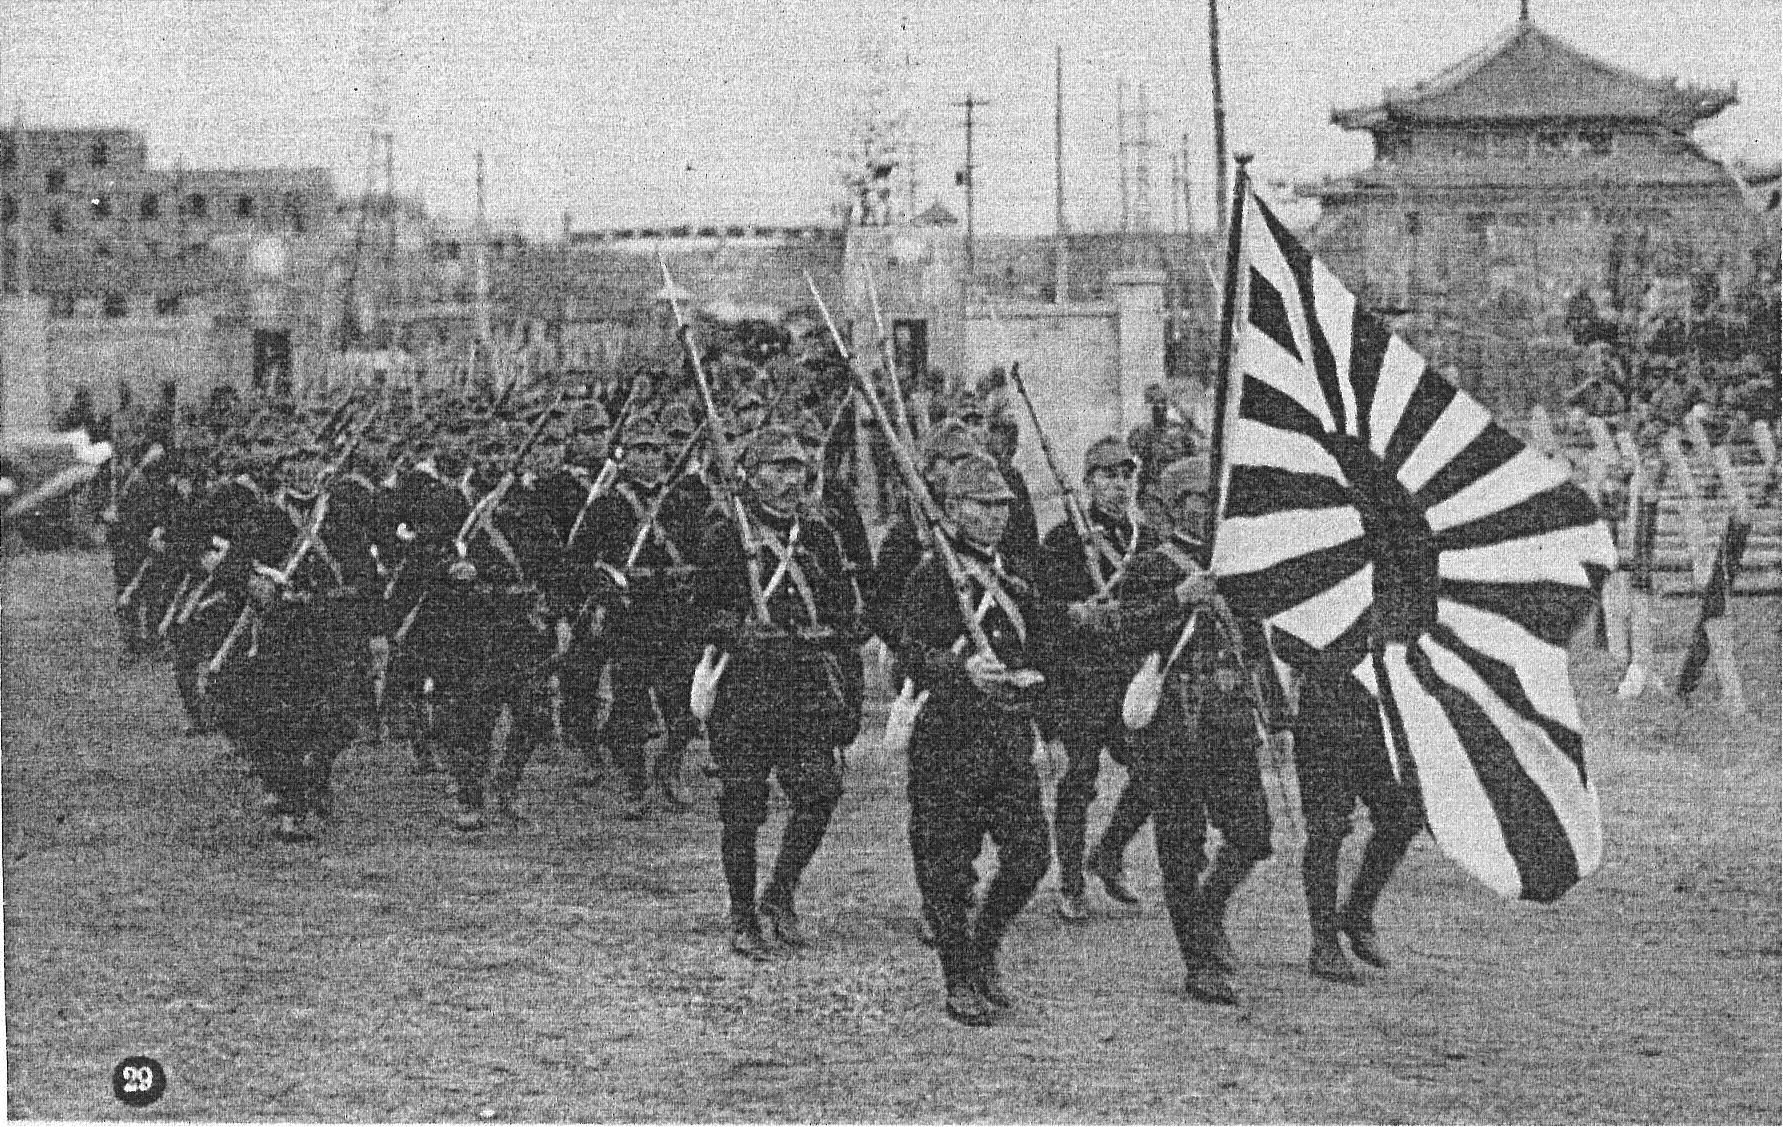 a history of japans road to militarism The road to war - japan - продолжительность: 49:05 nonsamaz 736 596 просмотров the move to global war: origins of japanese nationalism and militarism, part ii - продолжительность: 57:00 dobbiecast history 2 673 просмотра.